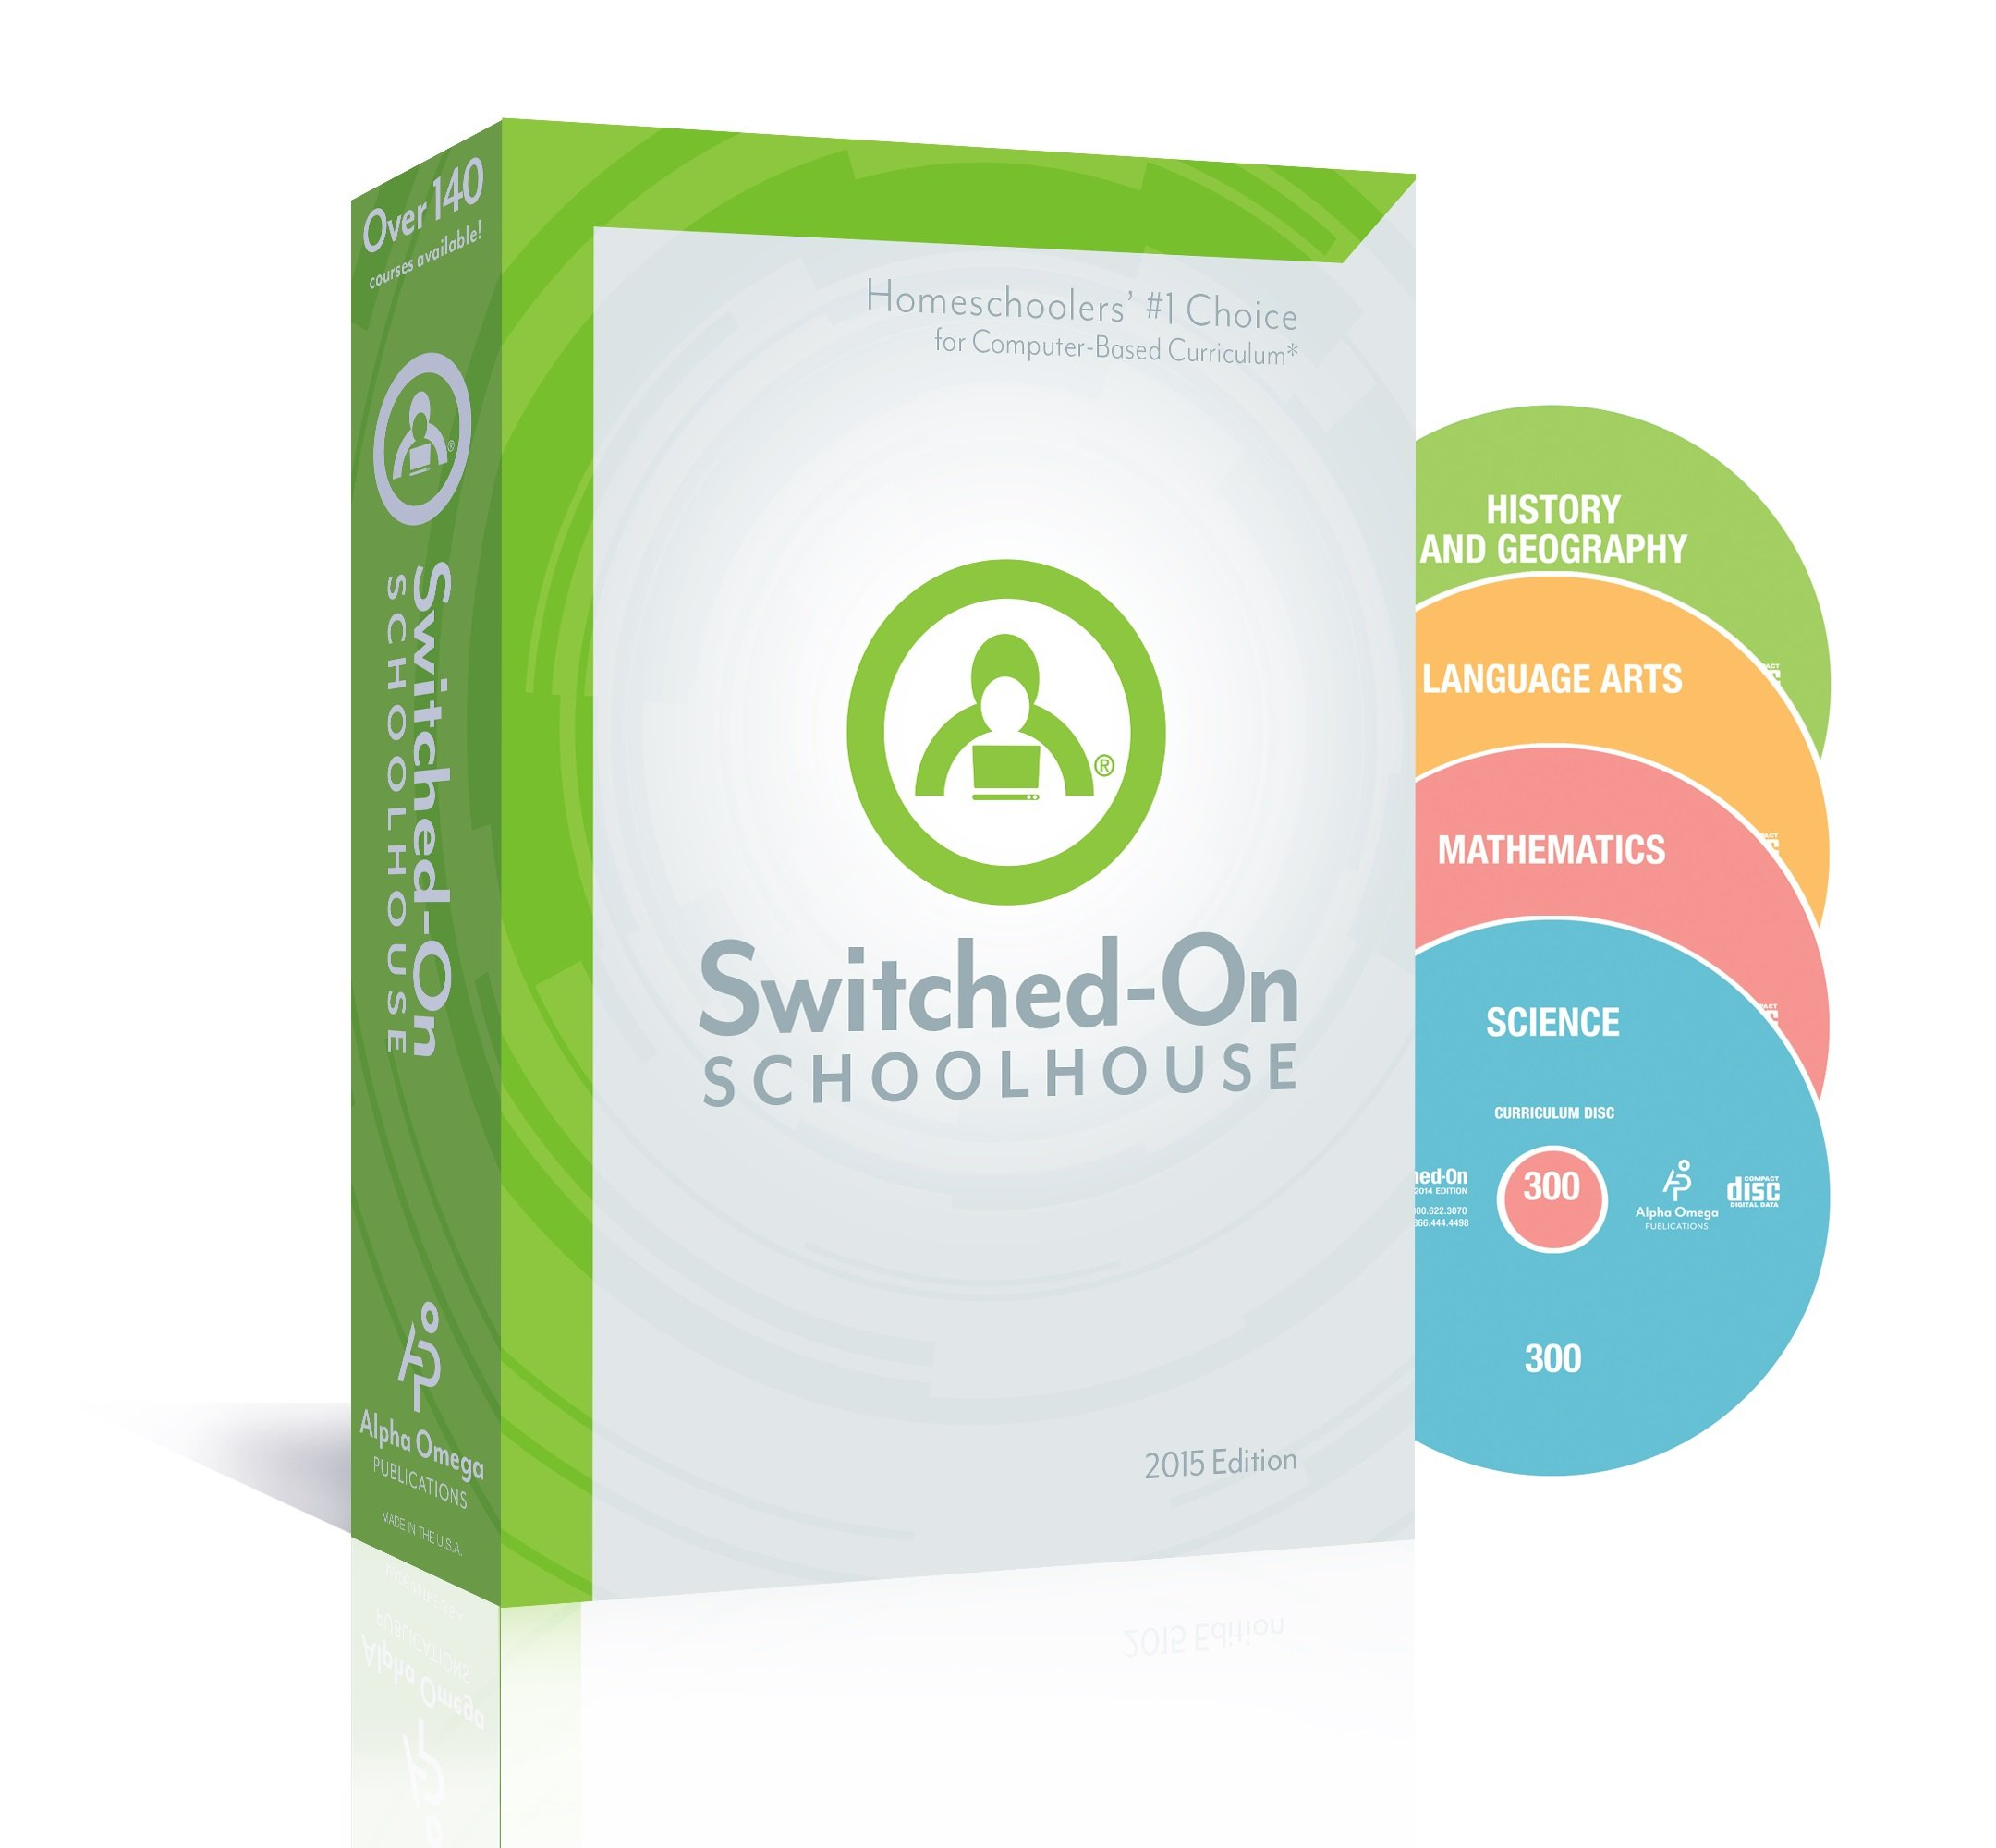 2015 Switched on Schoolhouse, Grade 4, AOP 4-Subject Set - Math, Language, Science & History / Geography (Alpha Omega HomeSchooling), SOS 4TH GRADE CD-ROM Curriculum, Core Subject Set